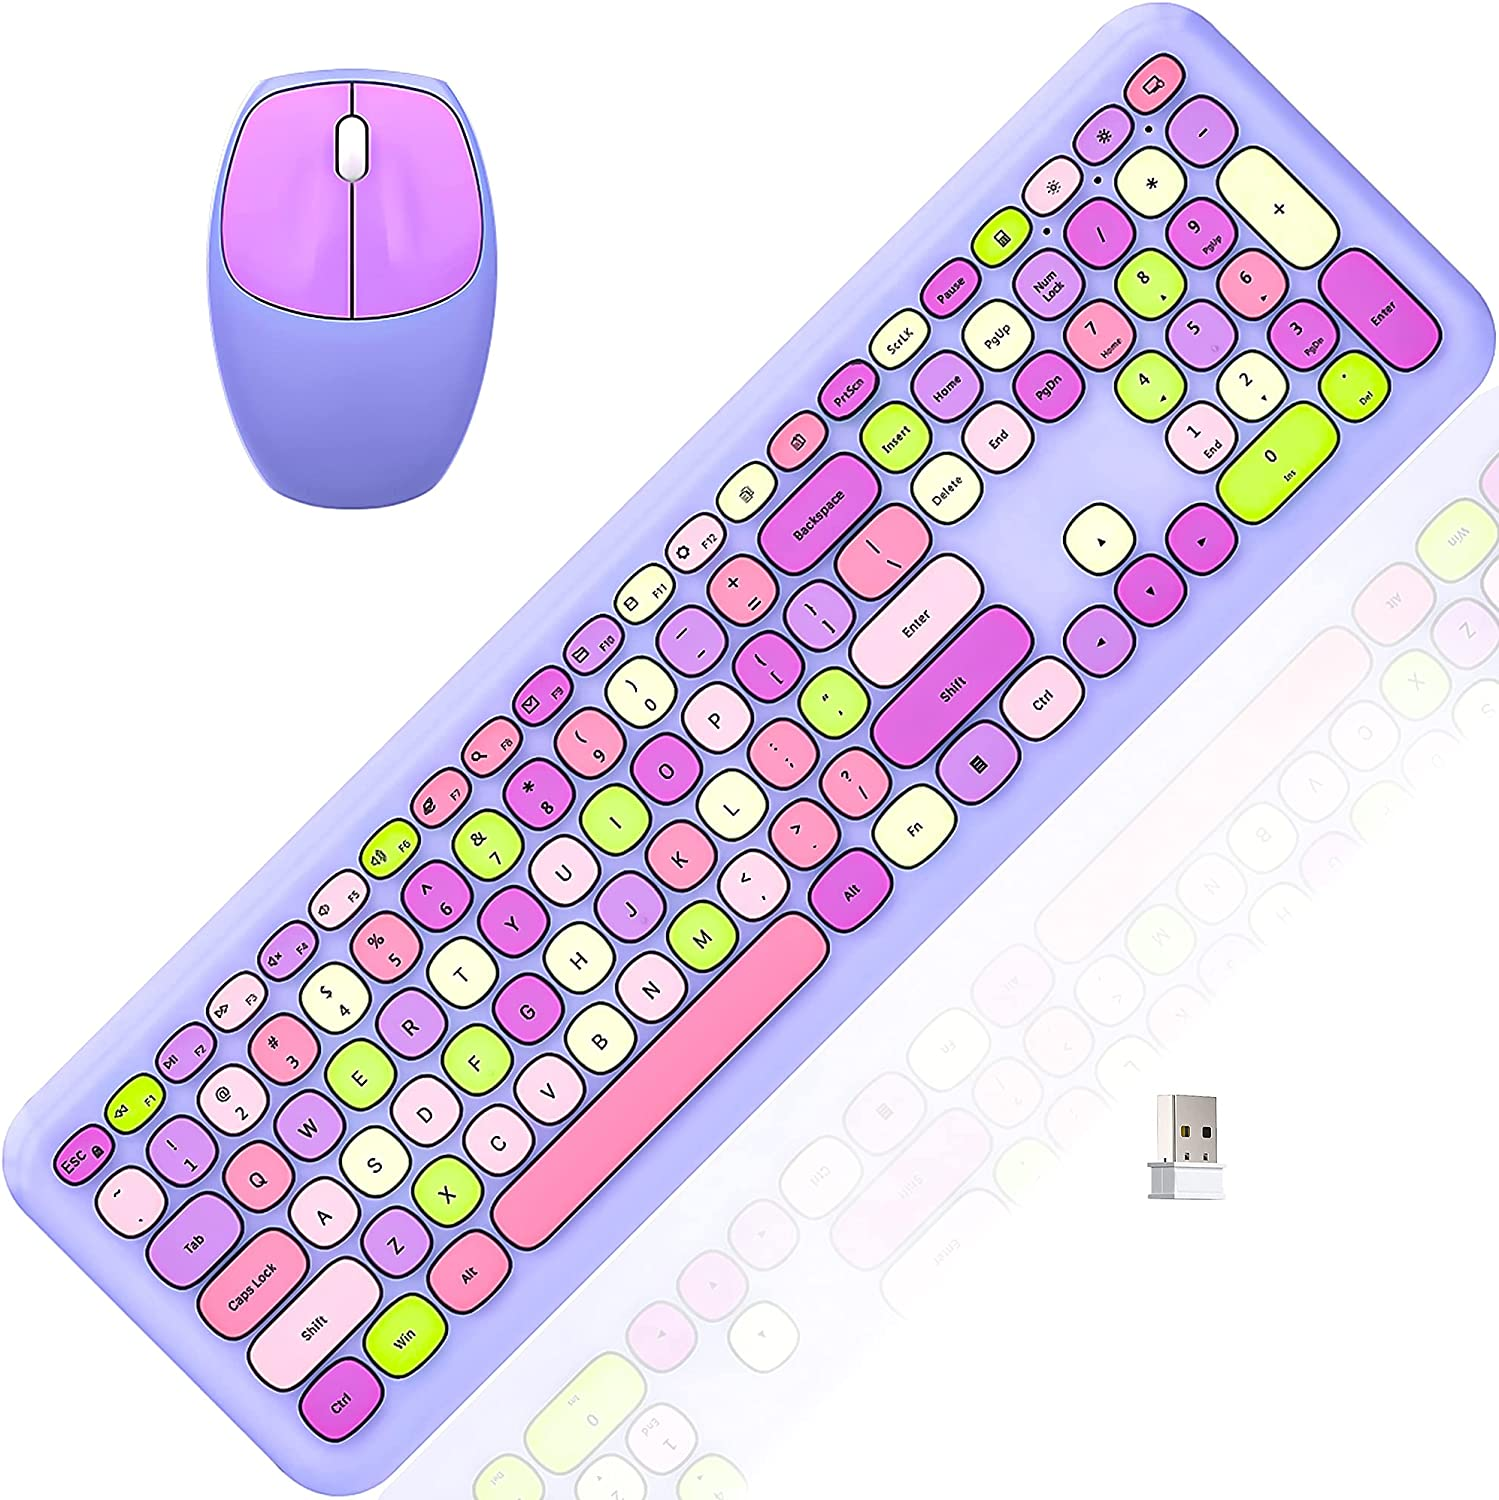 Colorful Wireless Keyboard and Mouse Combo, Cordless Full-Sized Computer Keyboard with Number Keypad,2.4Ghz USB Receiver,Energy Saving,Battery Powered for Laptop/Computer/PC/Desktop (Lilac)